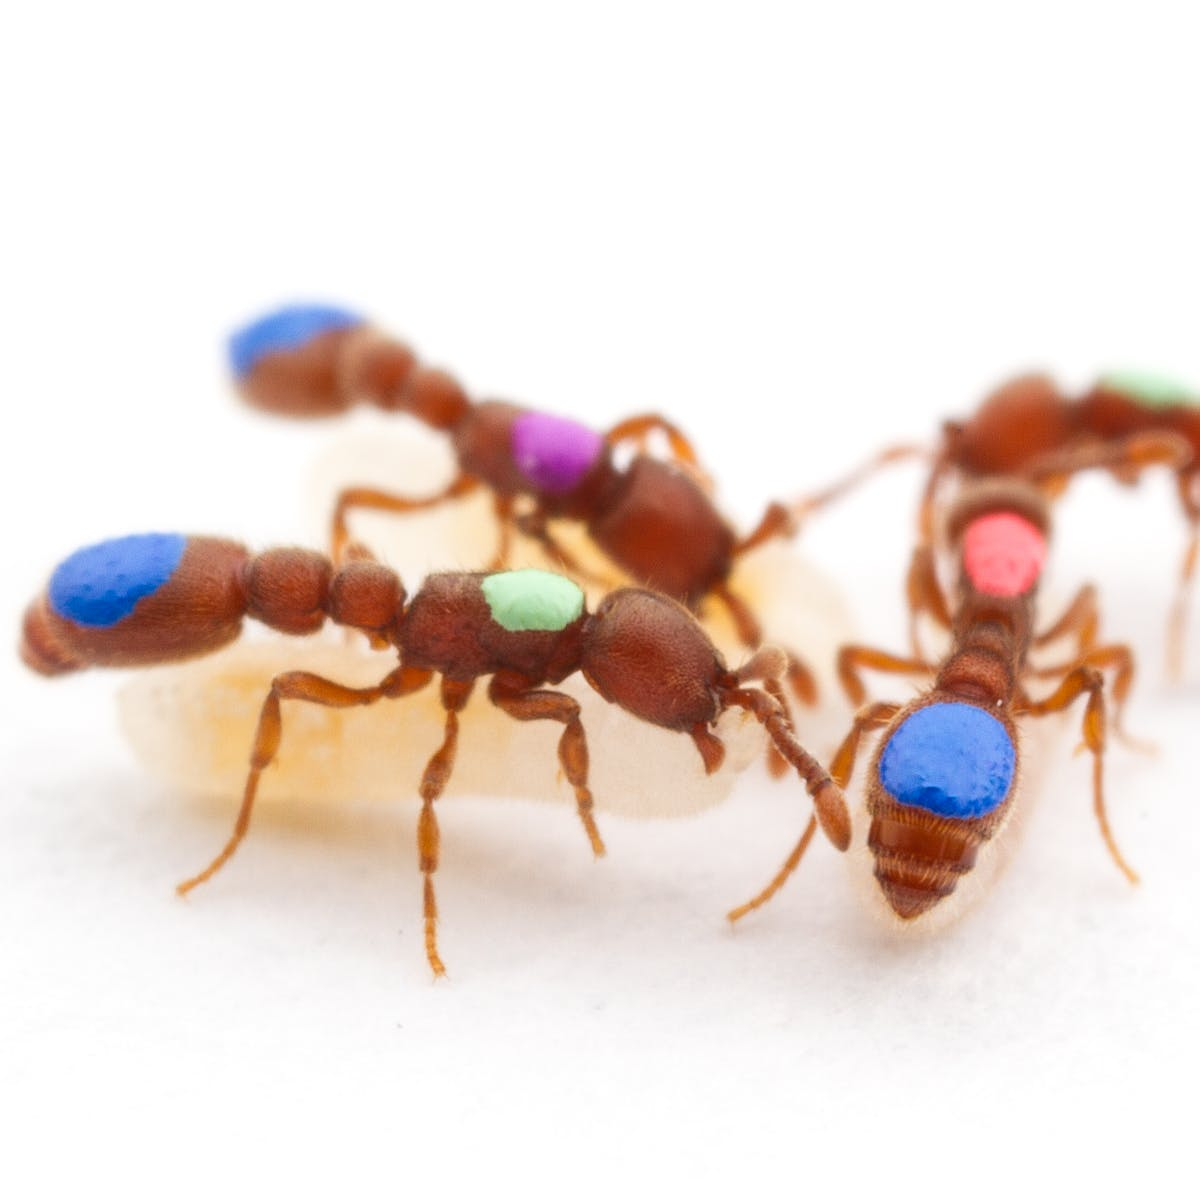 Cooperation Arises Naturally in Successful Ant Societies, Study Shows